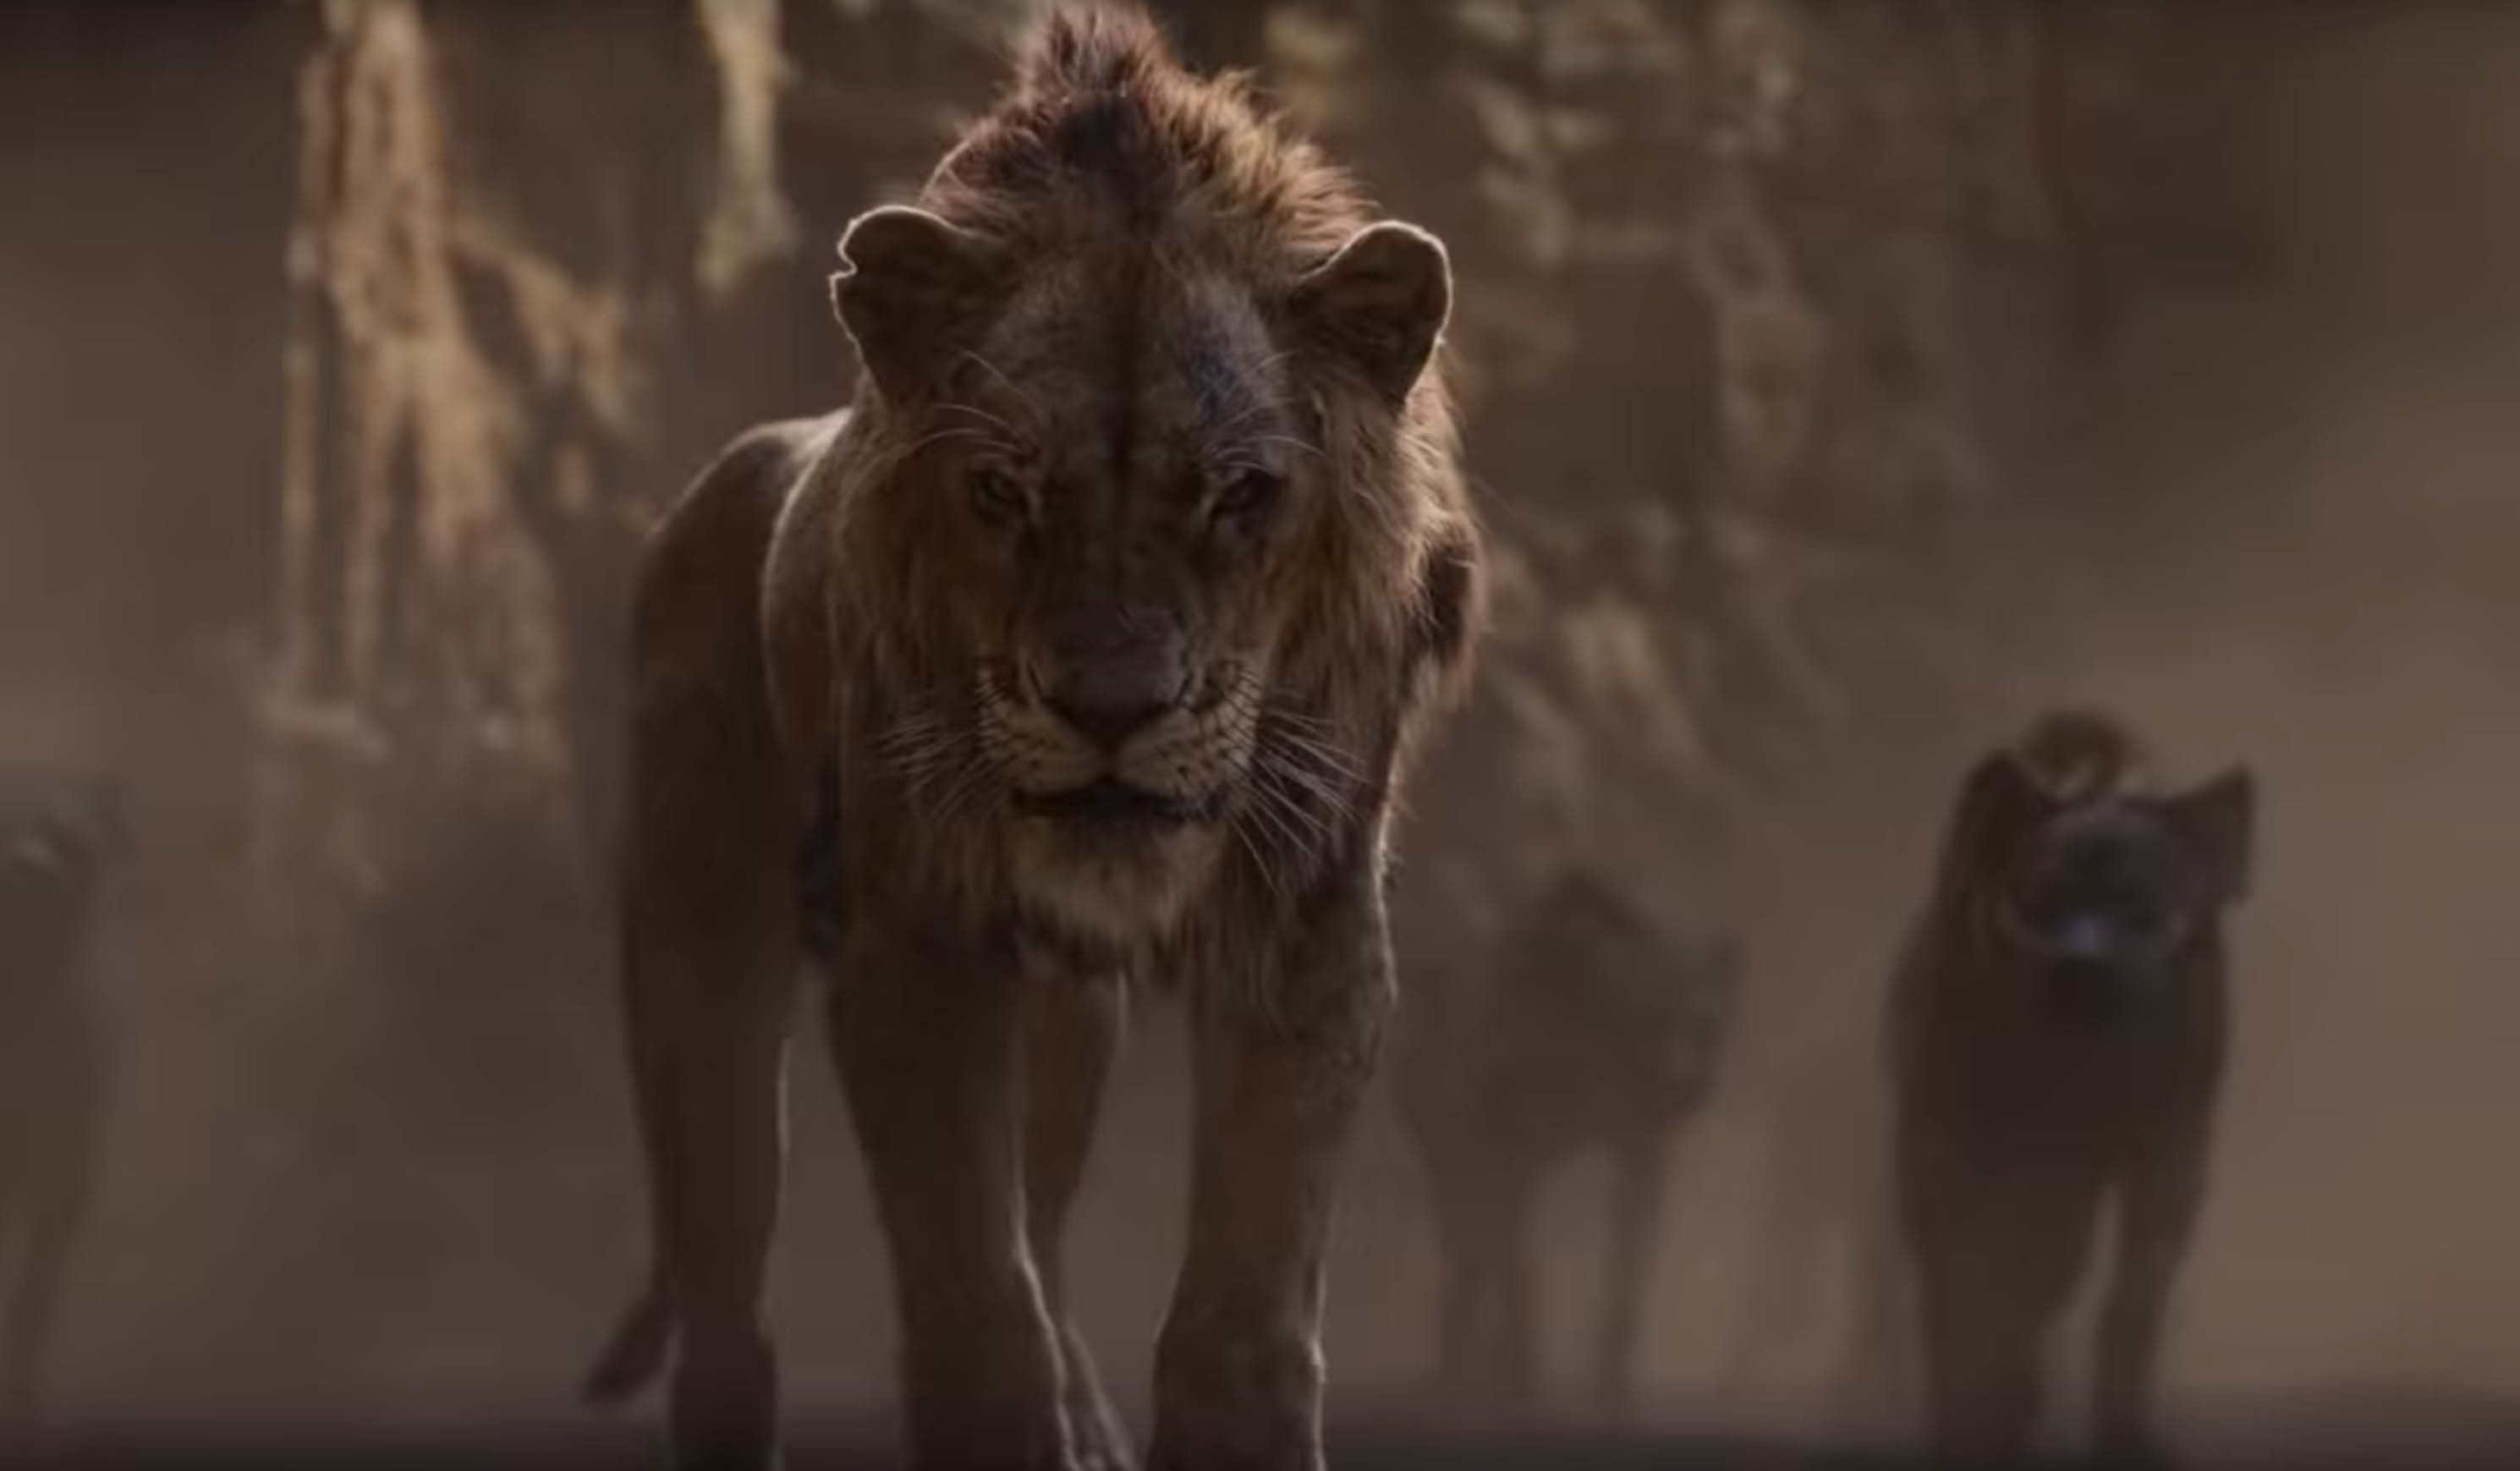 The Lion King | Trailer01